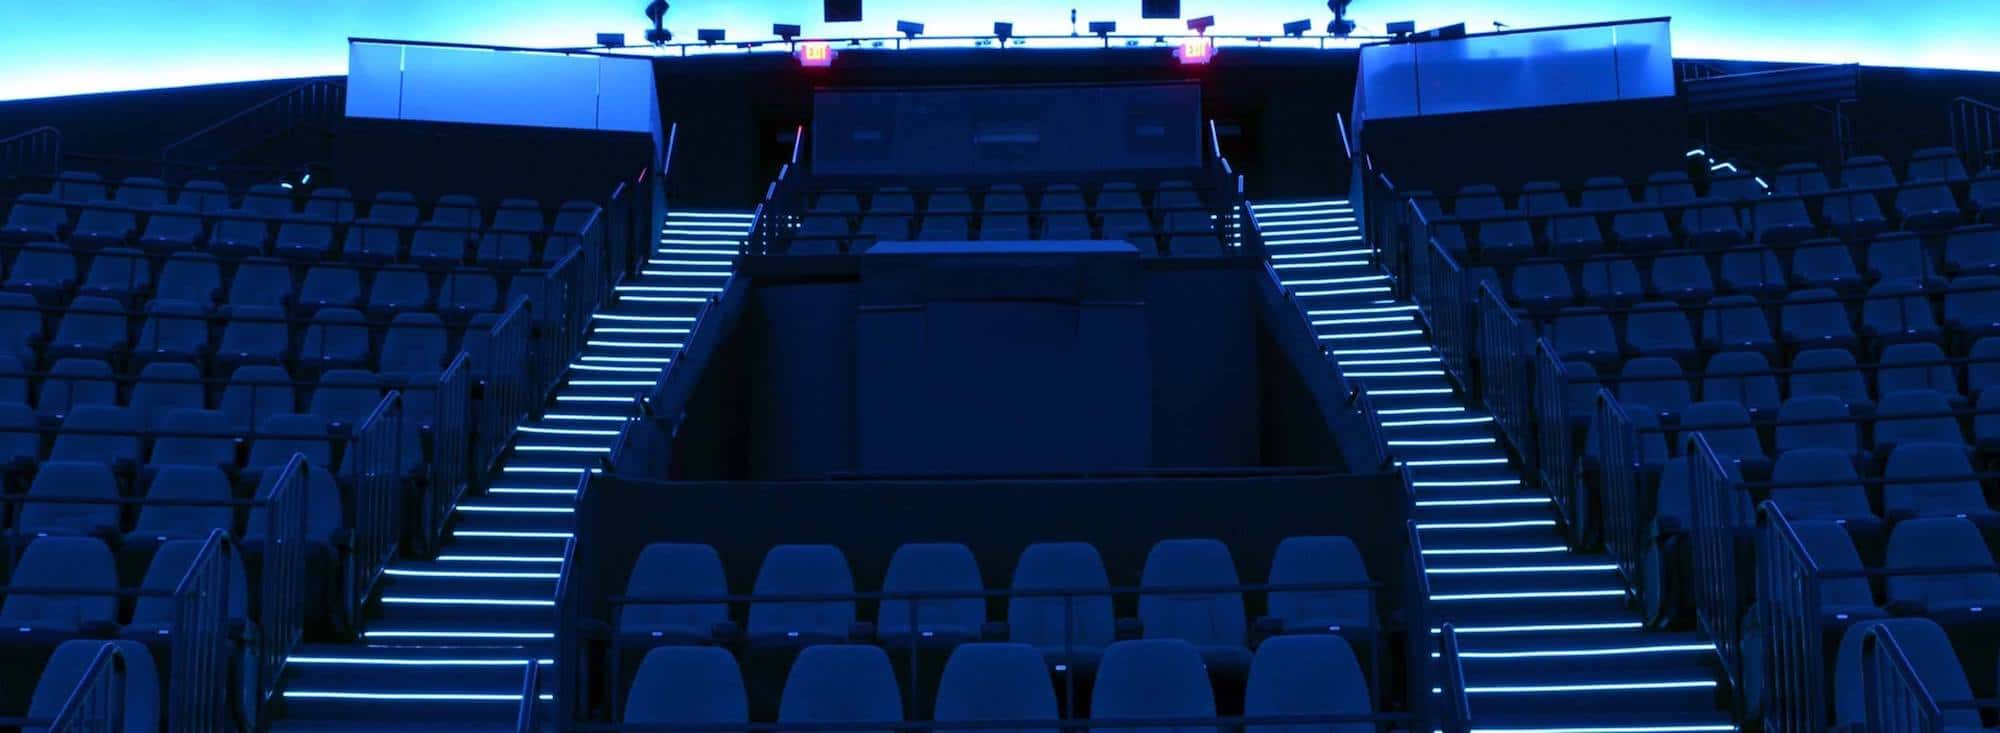 Light Tape IMAX Theater Illuminated Step Edge Installation.